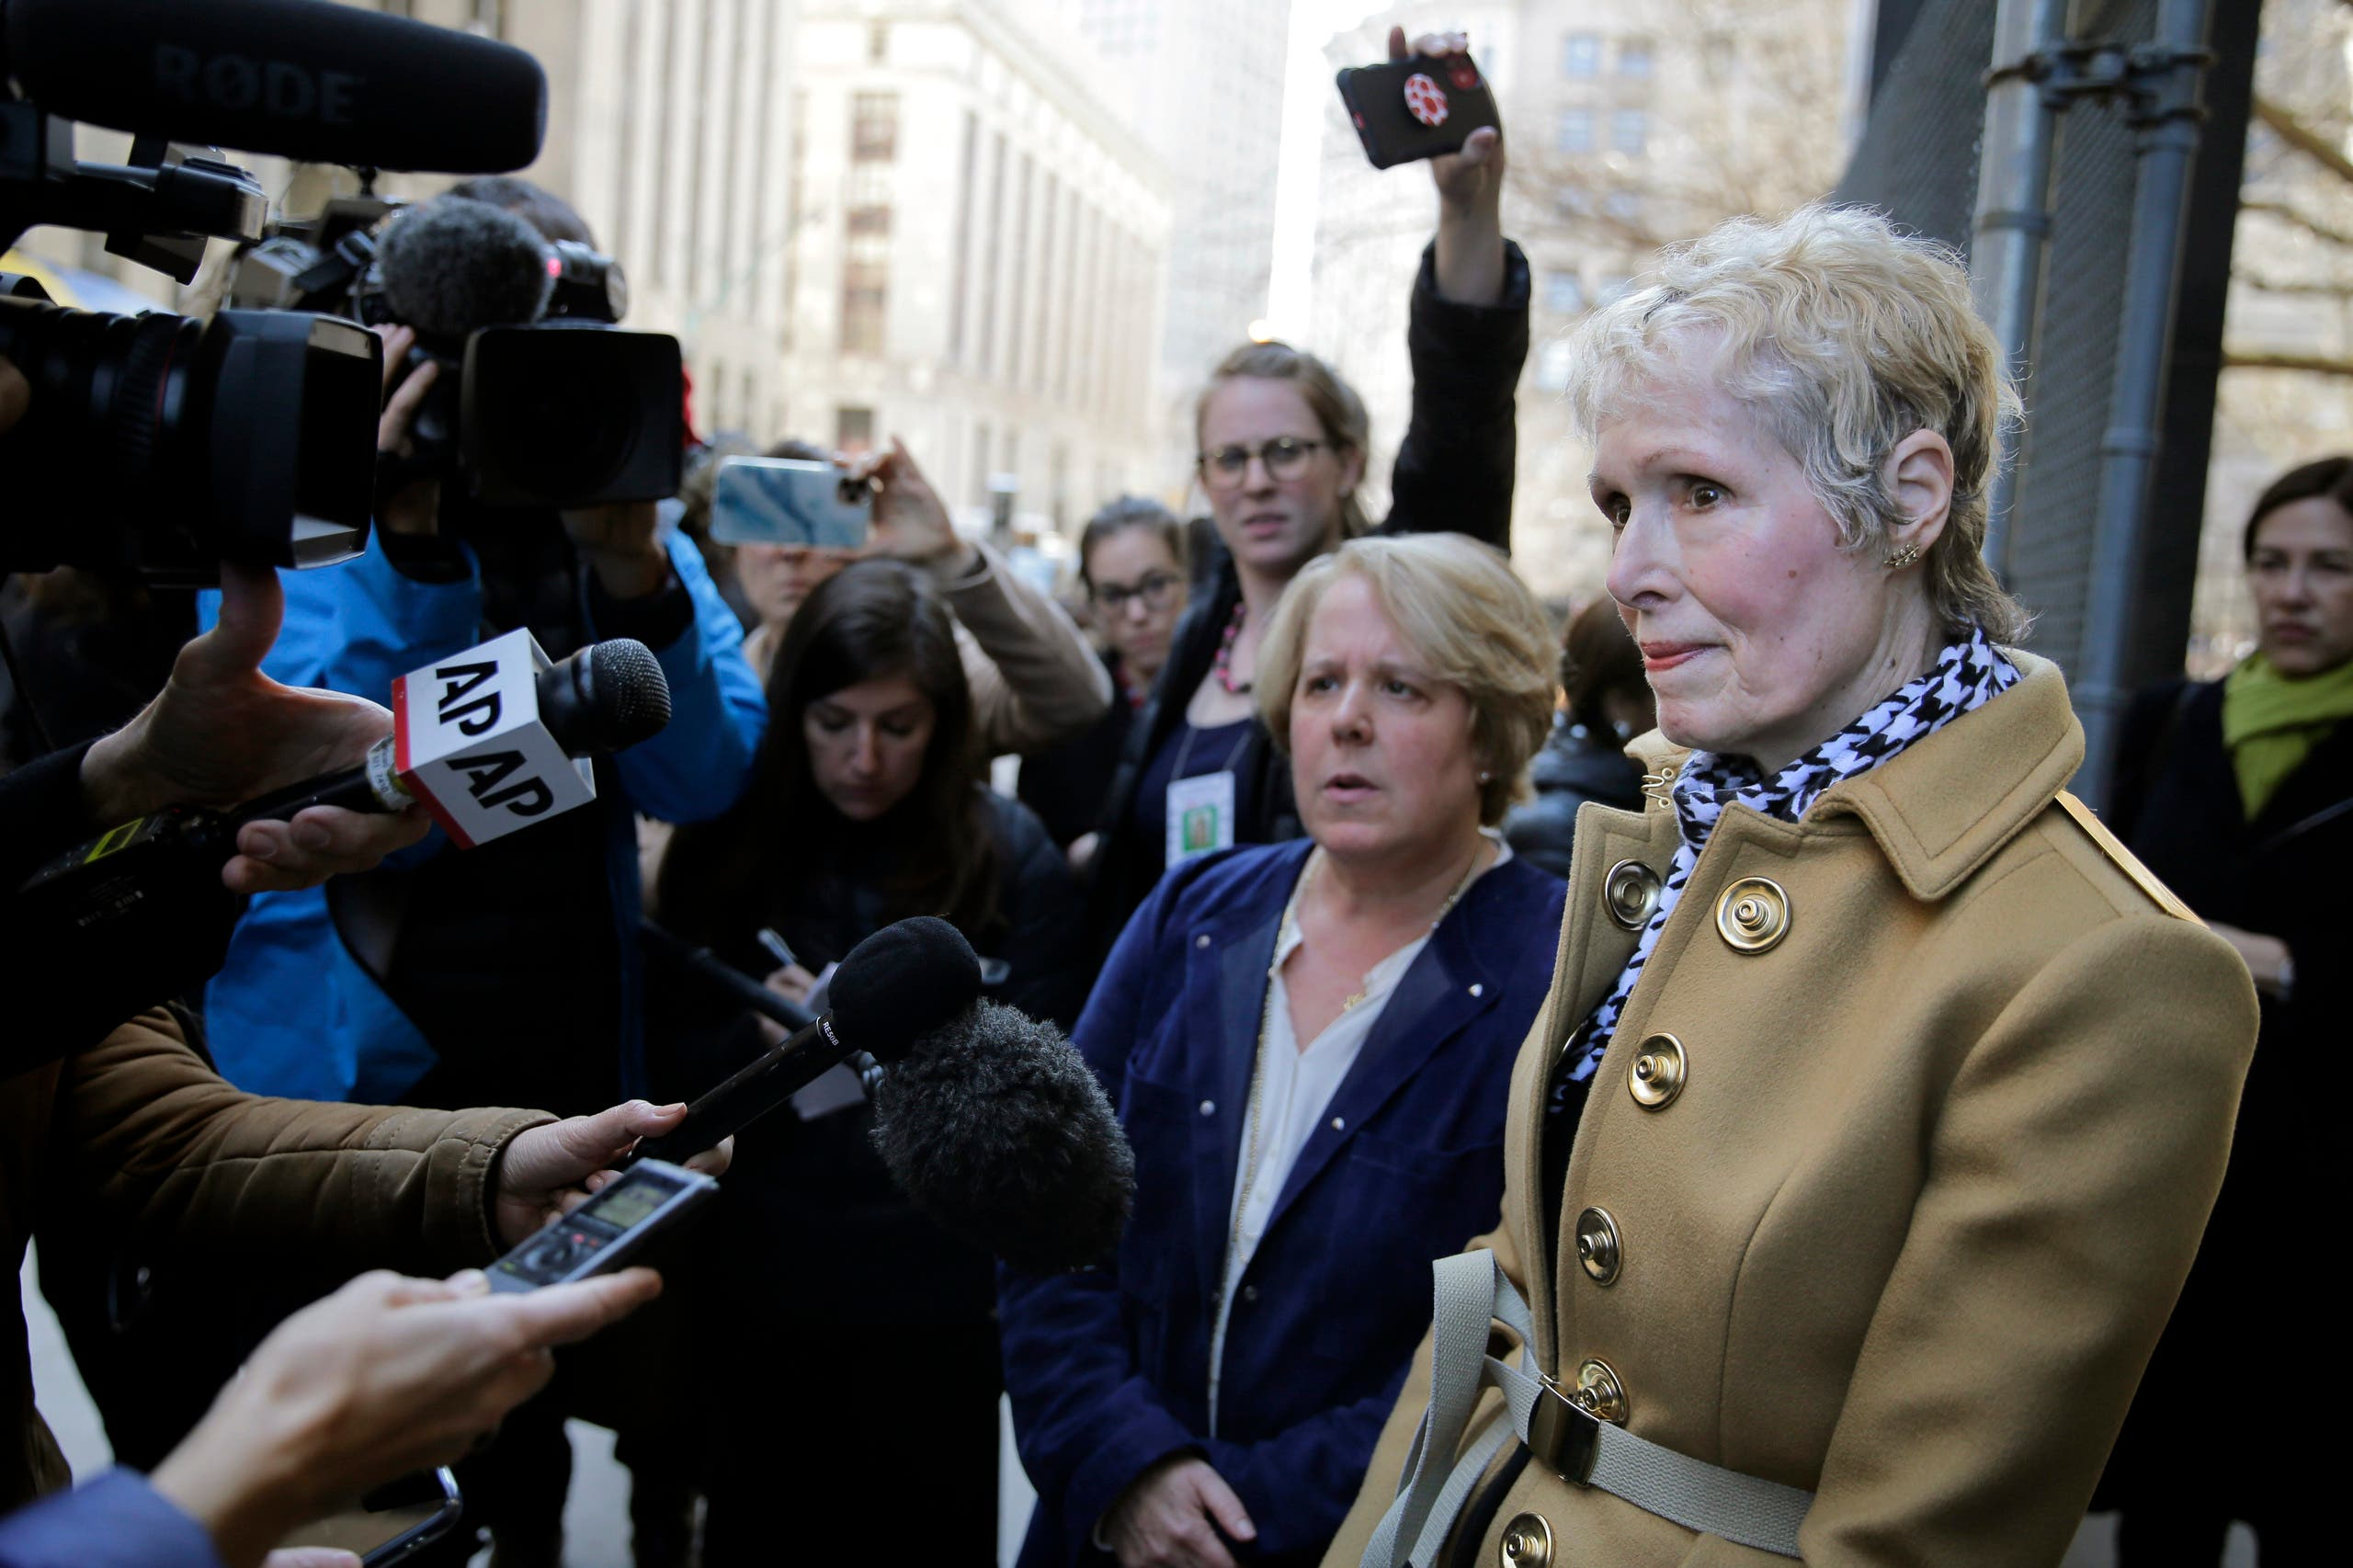 E. Jean Carroll, right, talks to reporters outside a courthouse in New York, Wednesday, March 4, 2020. (AP)